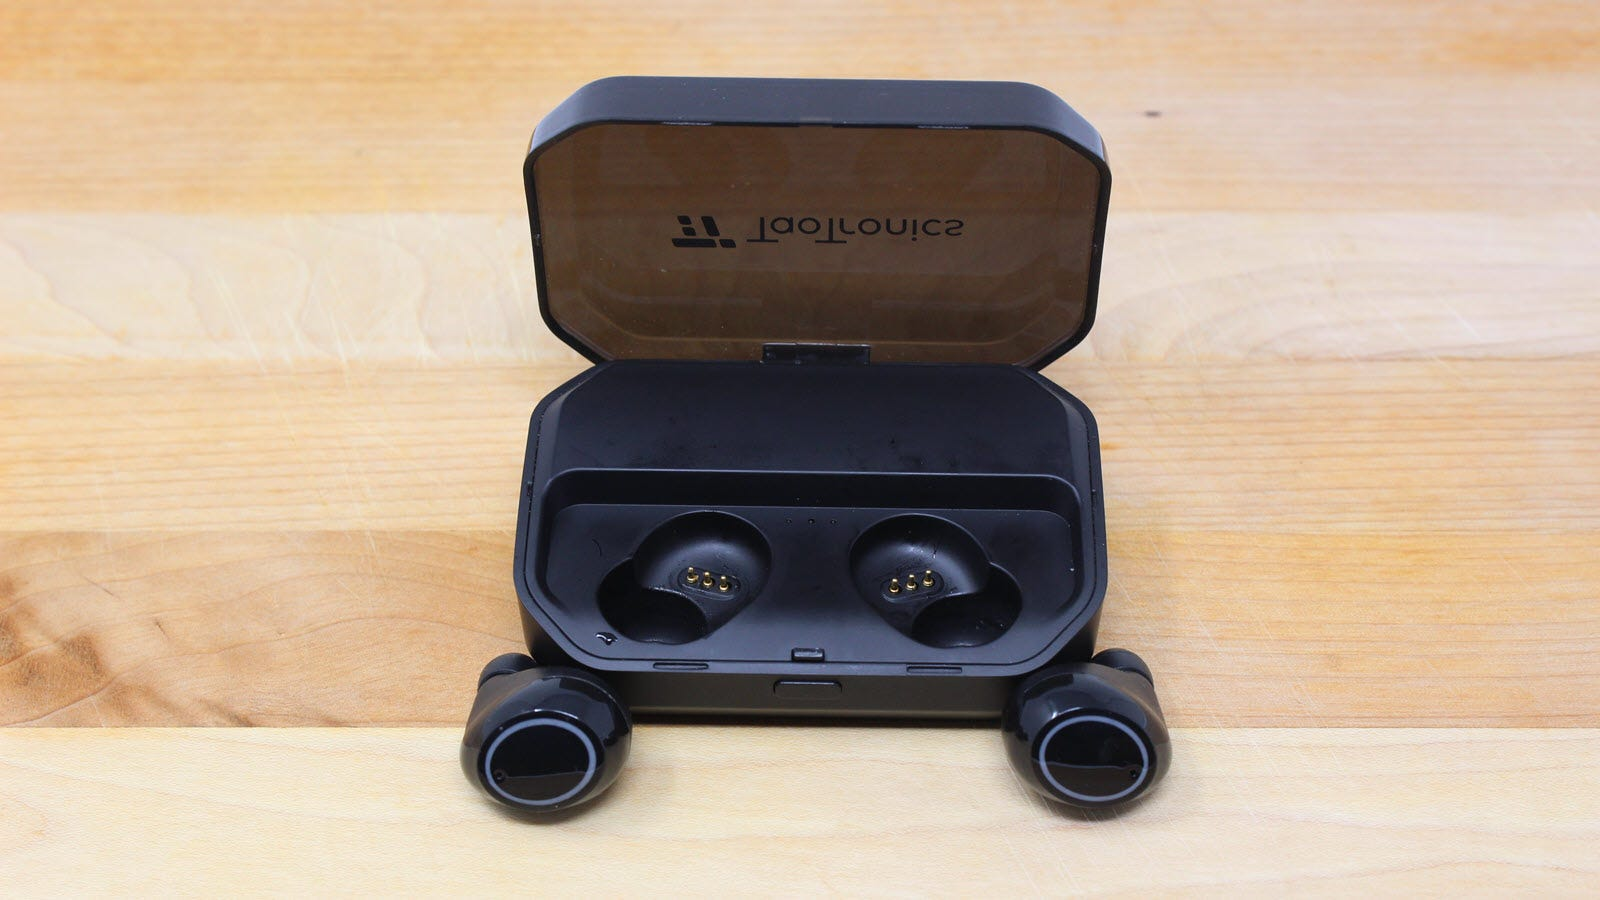 A topview of TaoTronics Earbuds and their case.